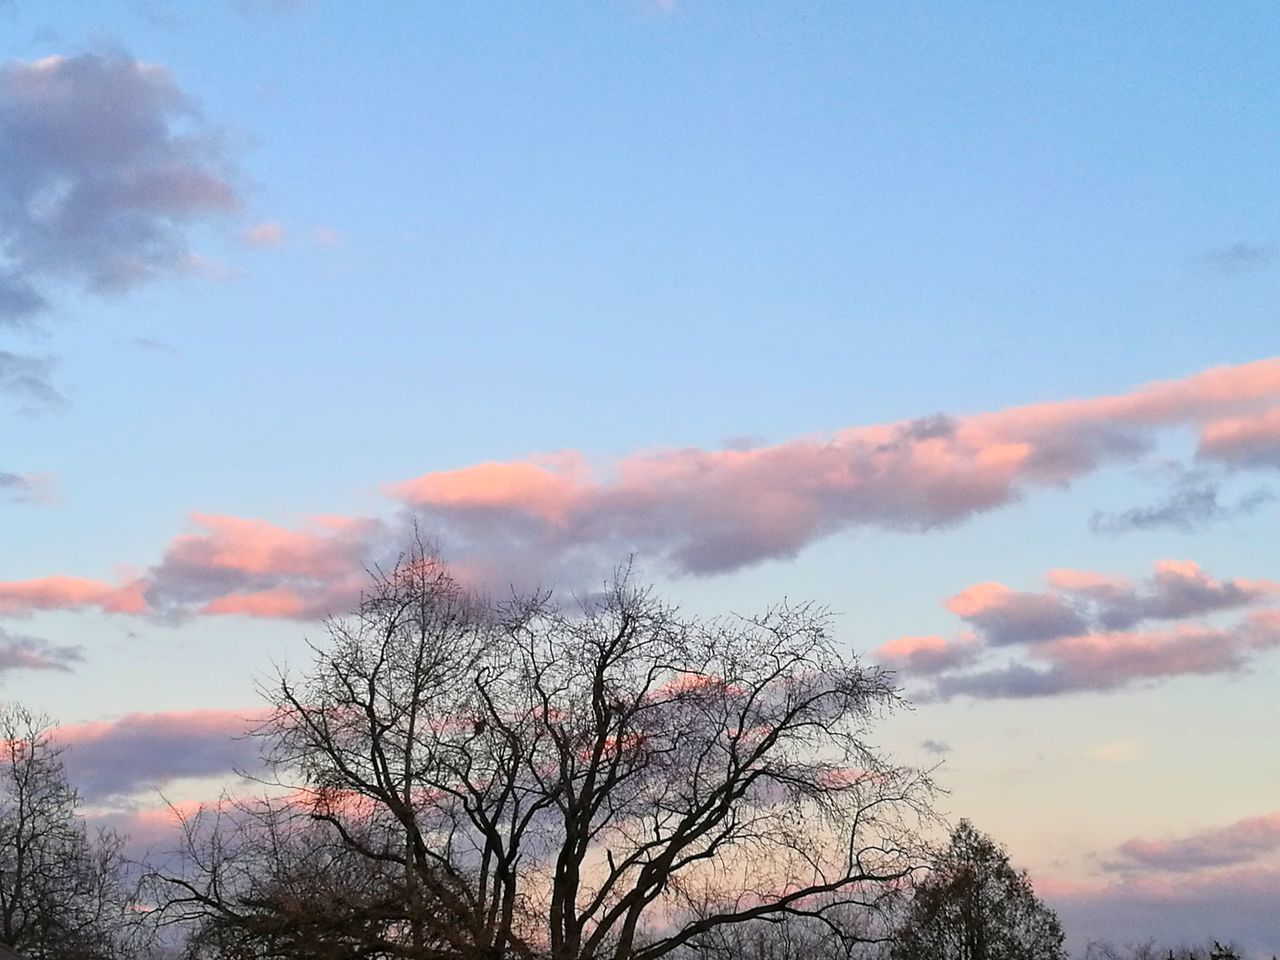 Sky Tree Beauty In Nature Nature Cloud - Sky Outdoors Low Angle View Tranquility No People Sunset Scenics Growth Landscape Day